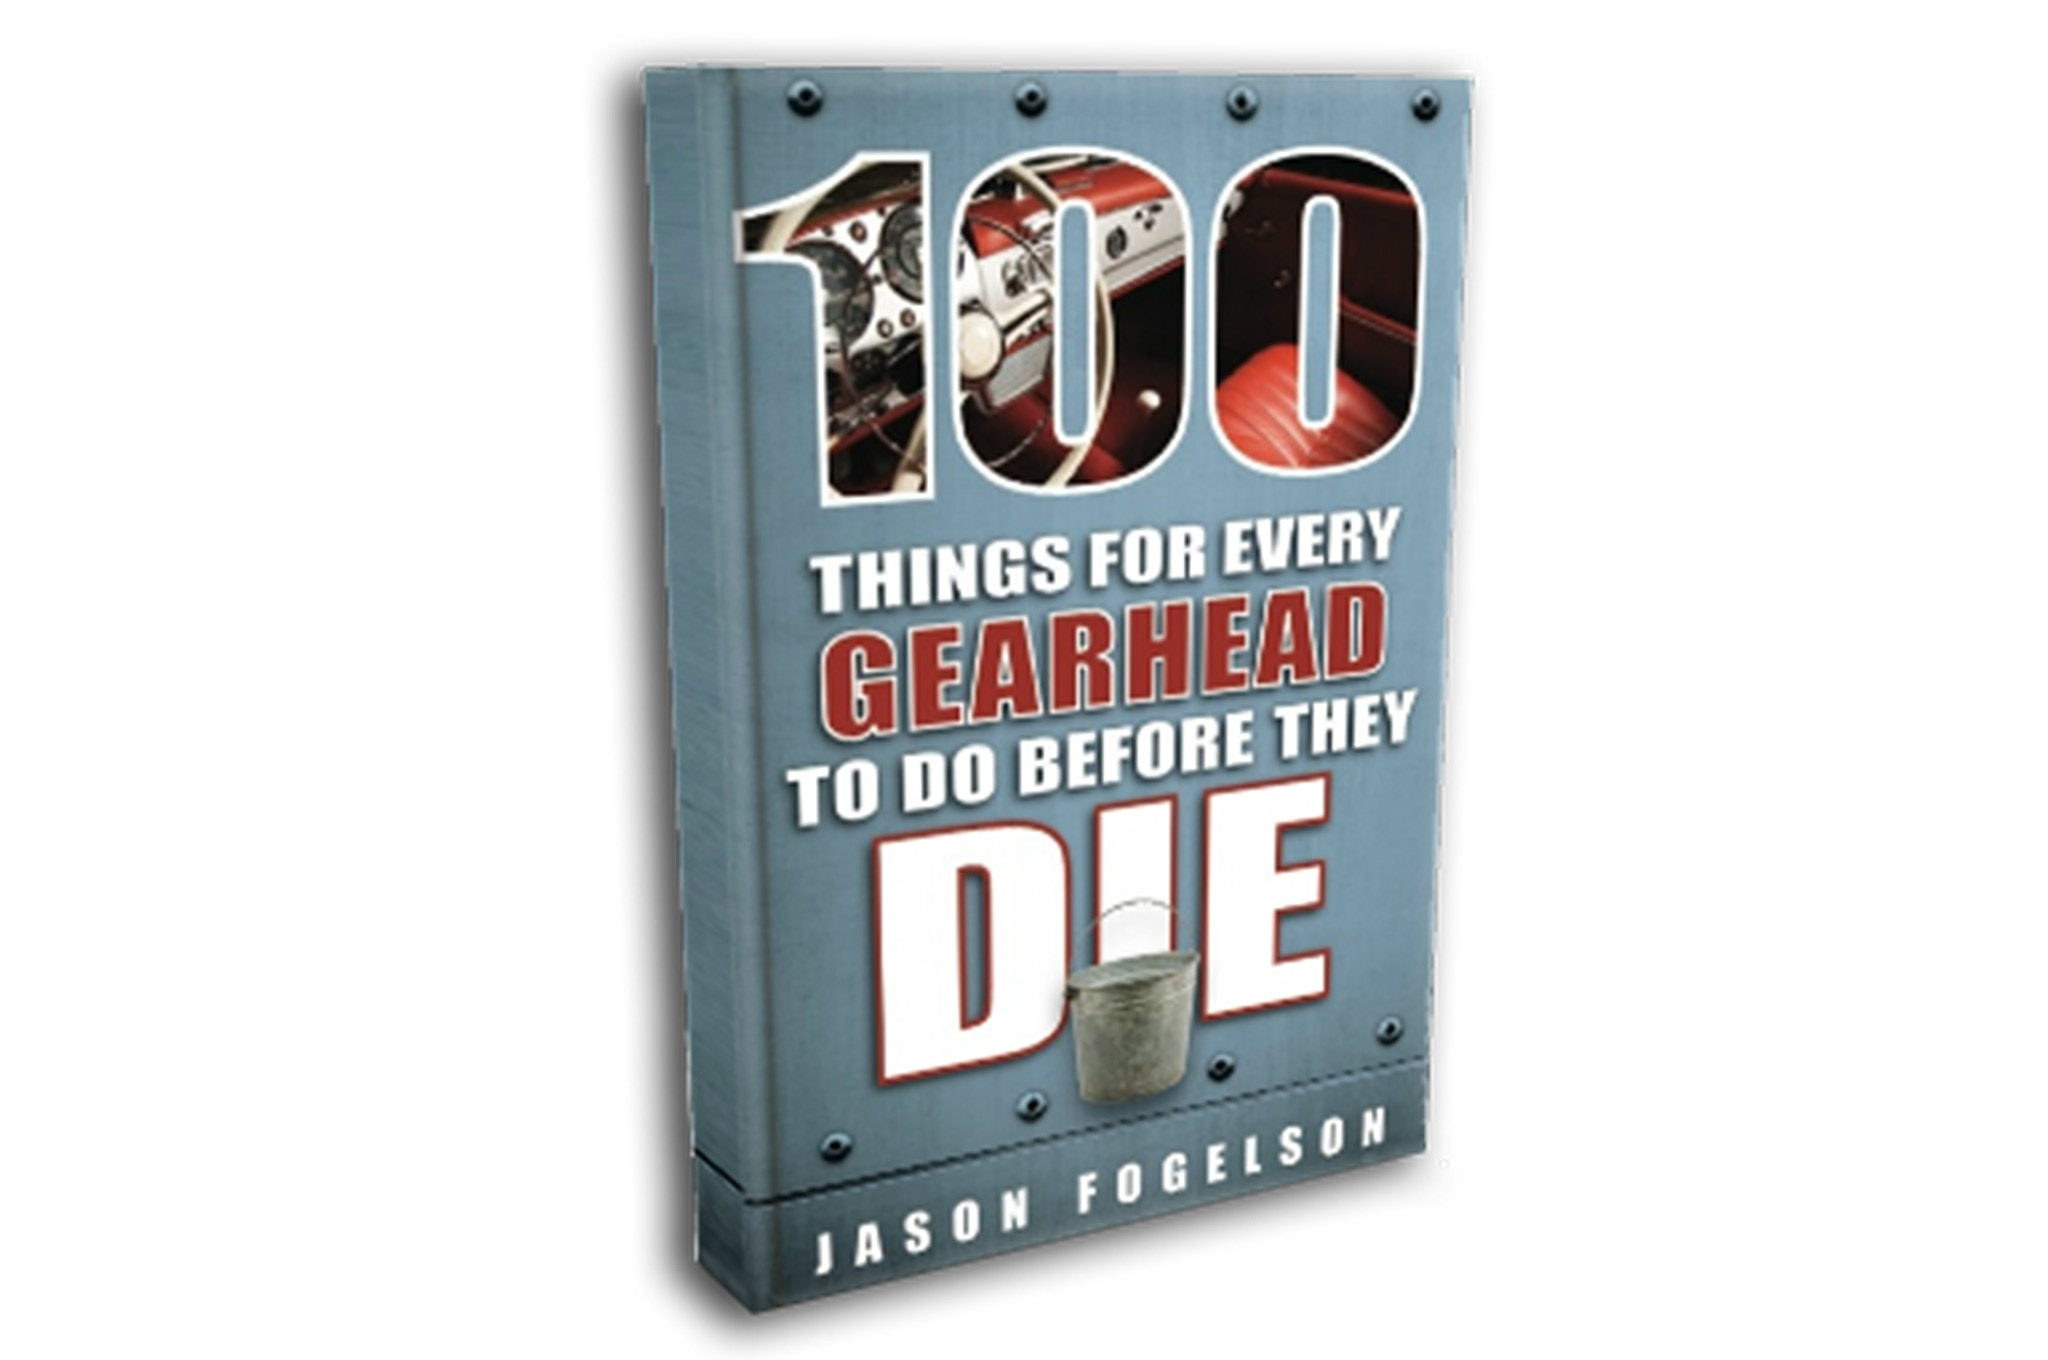 100 Things For Every Gearhead To Do Before They Die Book Jason Fogelson Cover